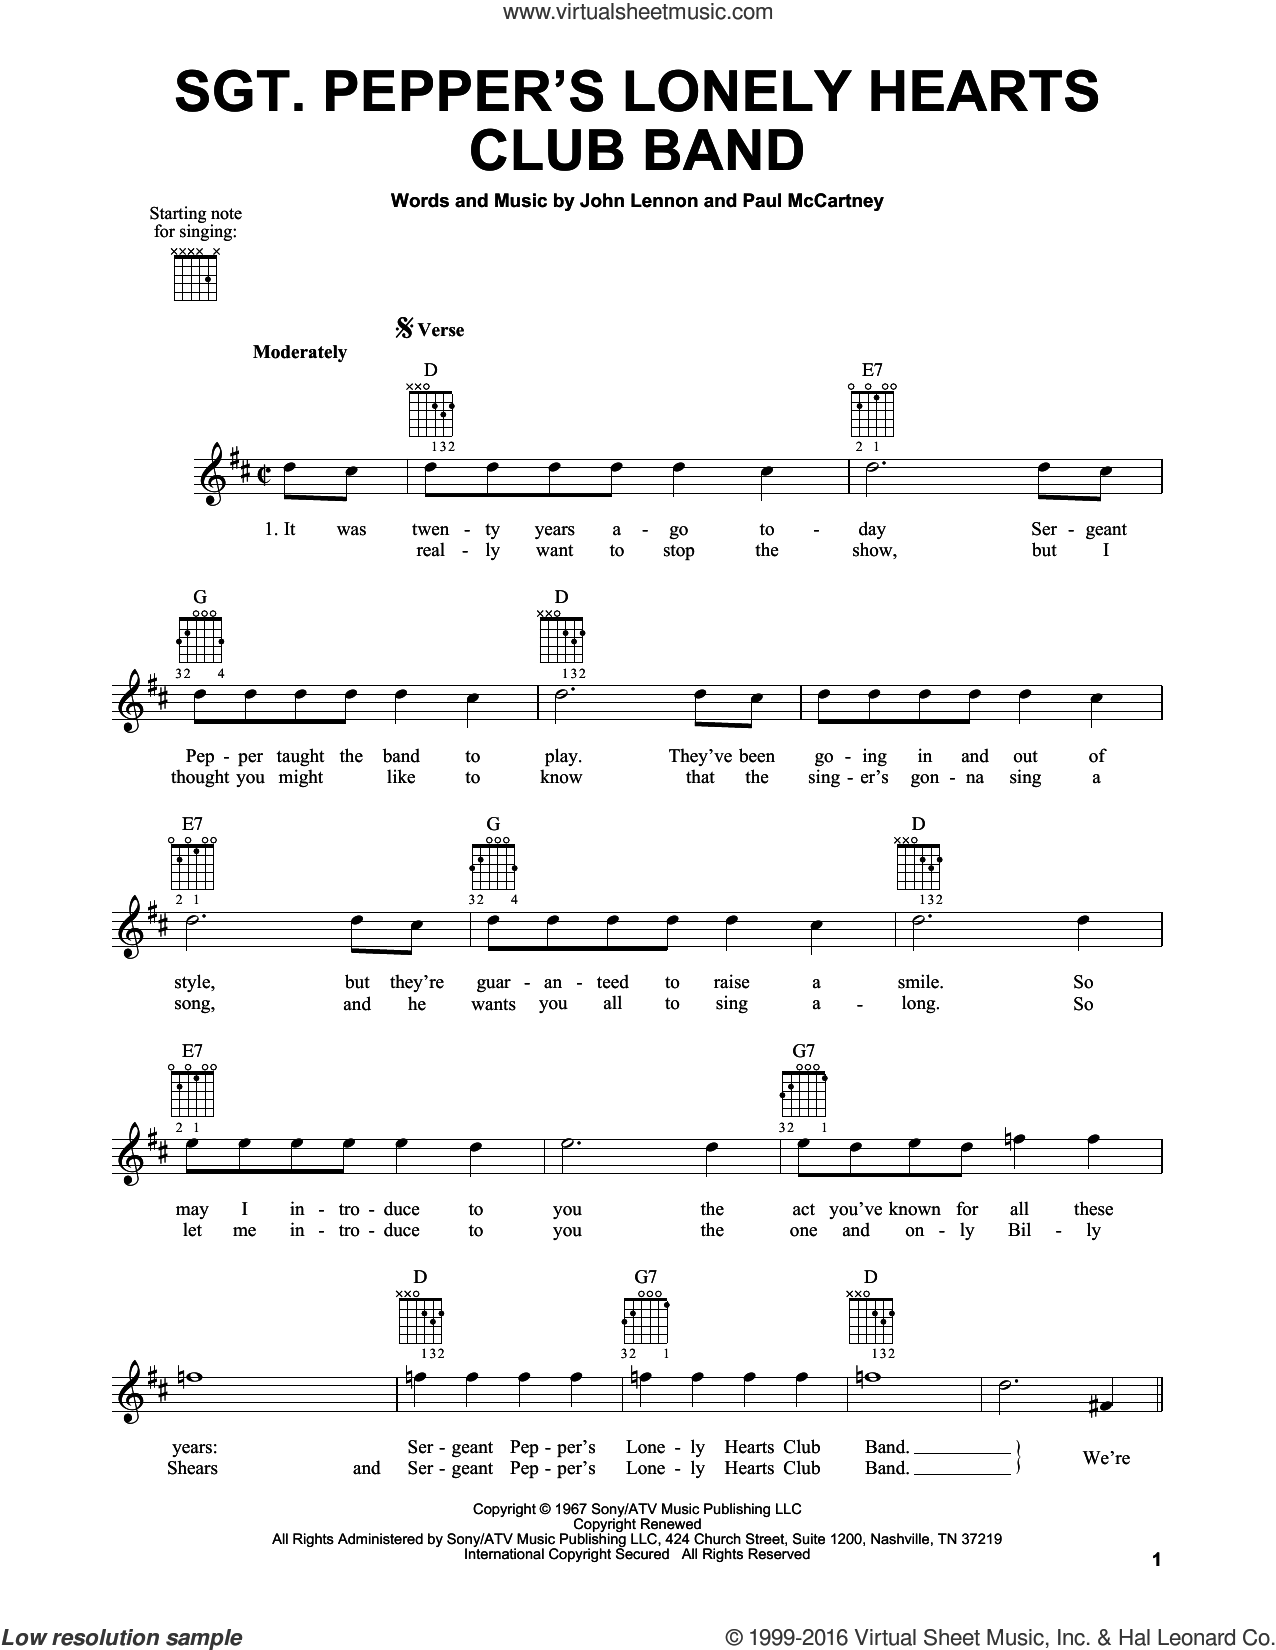 Sgt. Pepper's Lonely Hearts Club Band sheet music for guitar solo (chords) by Paul McCartney, The Beatles and John Lennon. Score Image Preview.